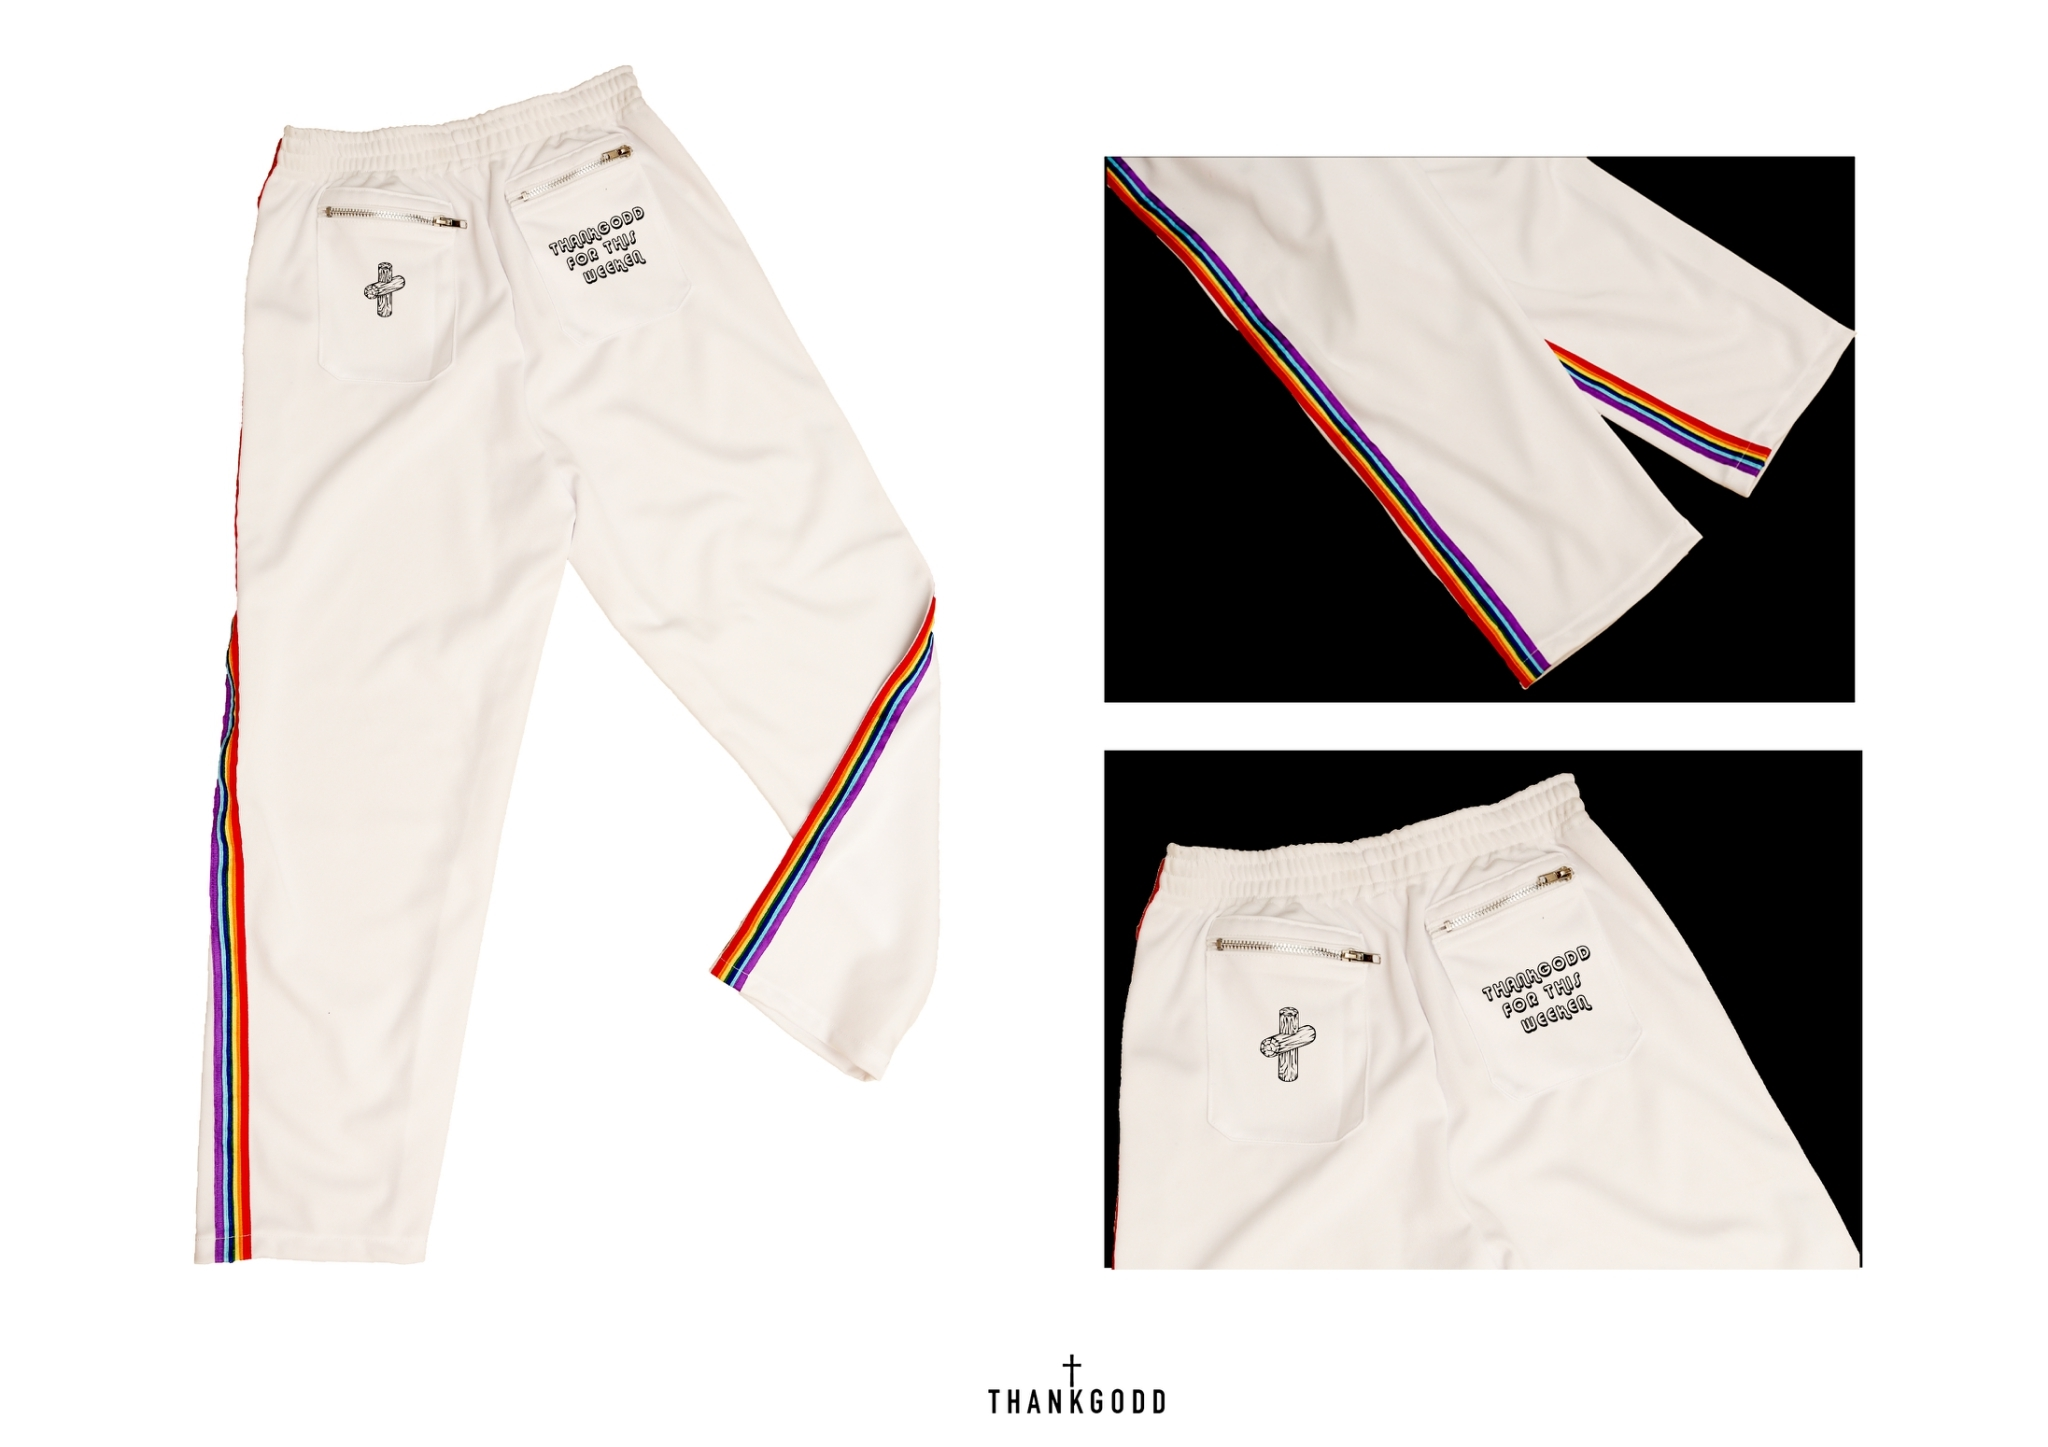 [ THANKGODD RAINBOW PANTS - 700 THB ]